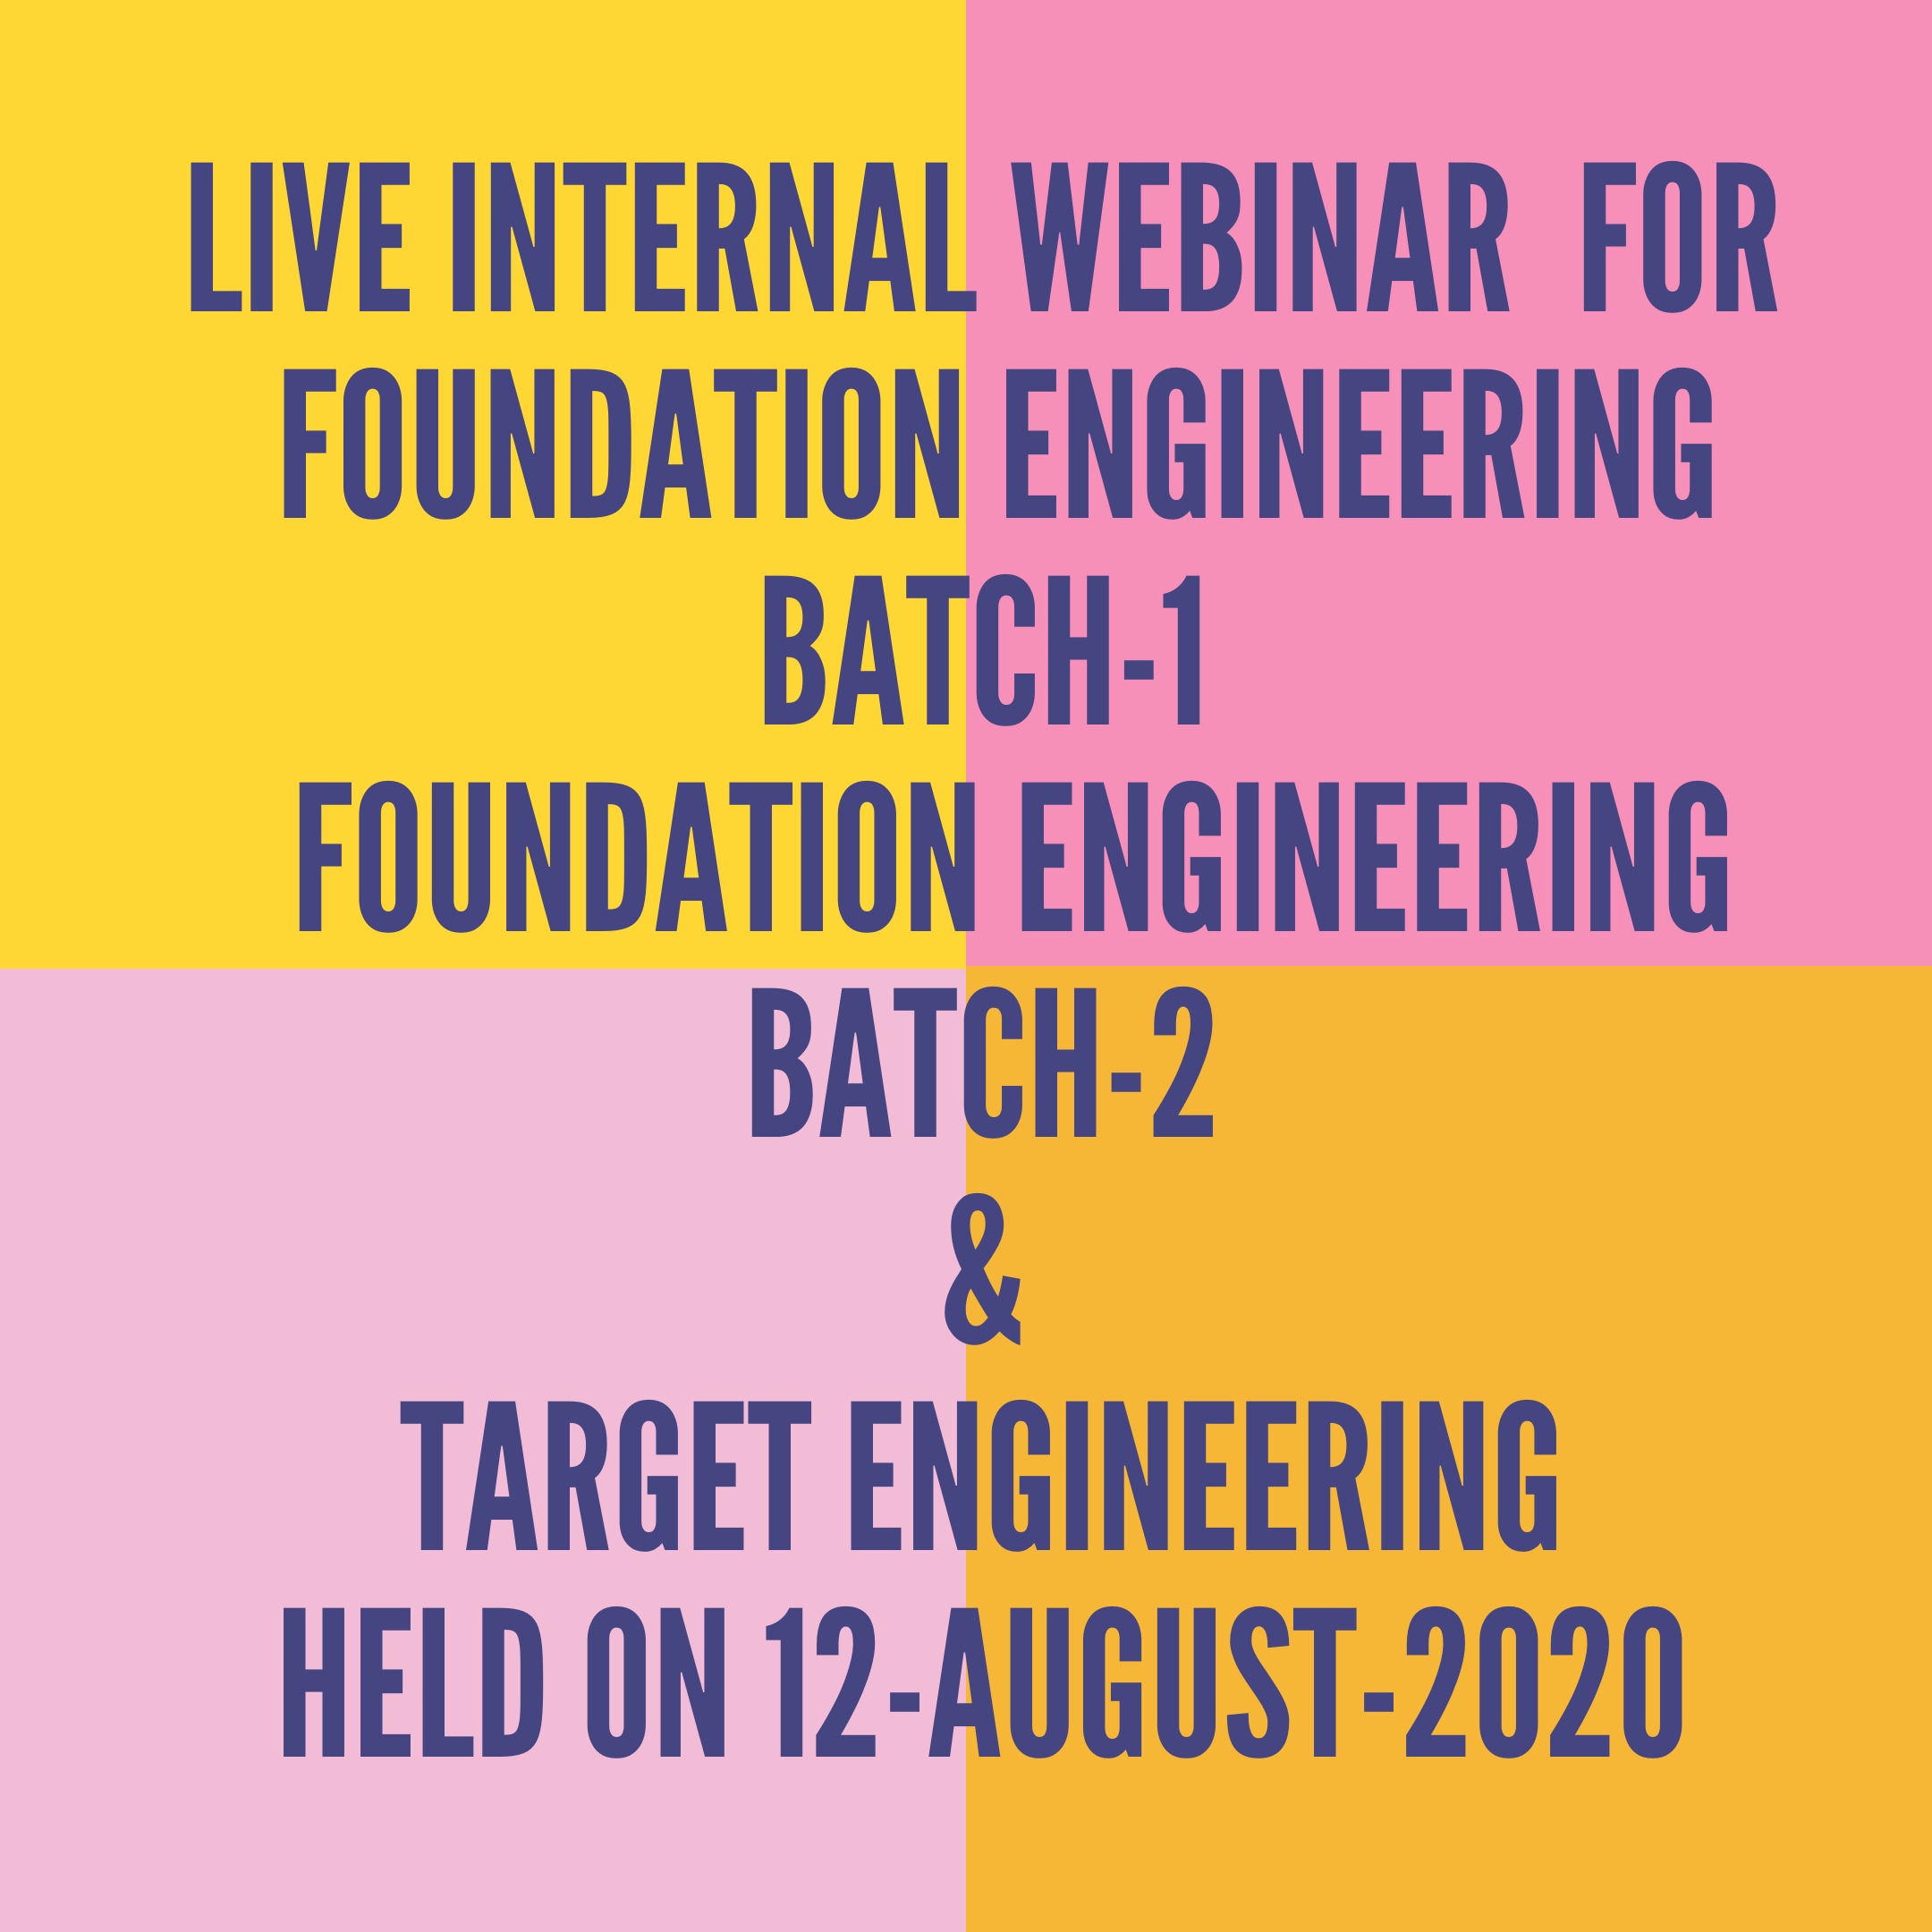 LIVE INTERNAL WEBINAR  FOR FOUNDATION ENGINEERING BATCH-1  FOUNDATION ENGINEERING BATCH-2 & TARGET ENGINEERING  HELD ON 12TH- AUGUST 2020